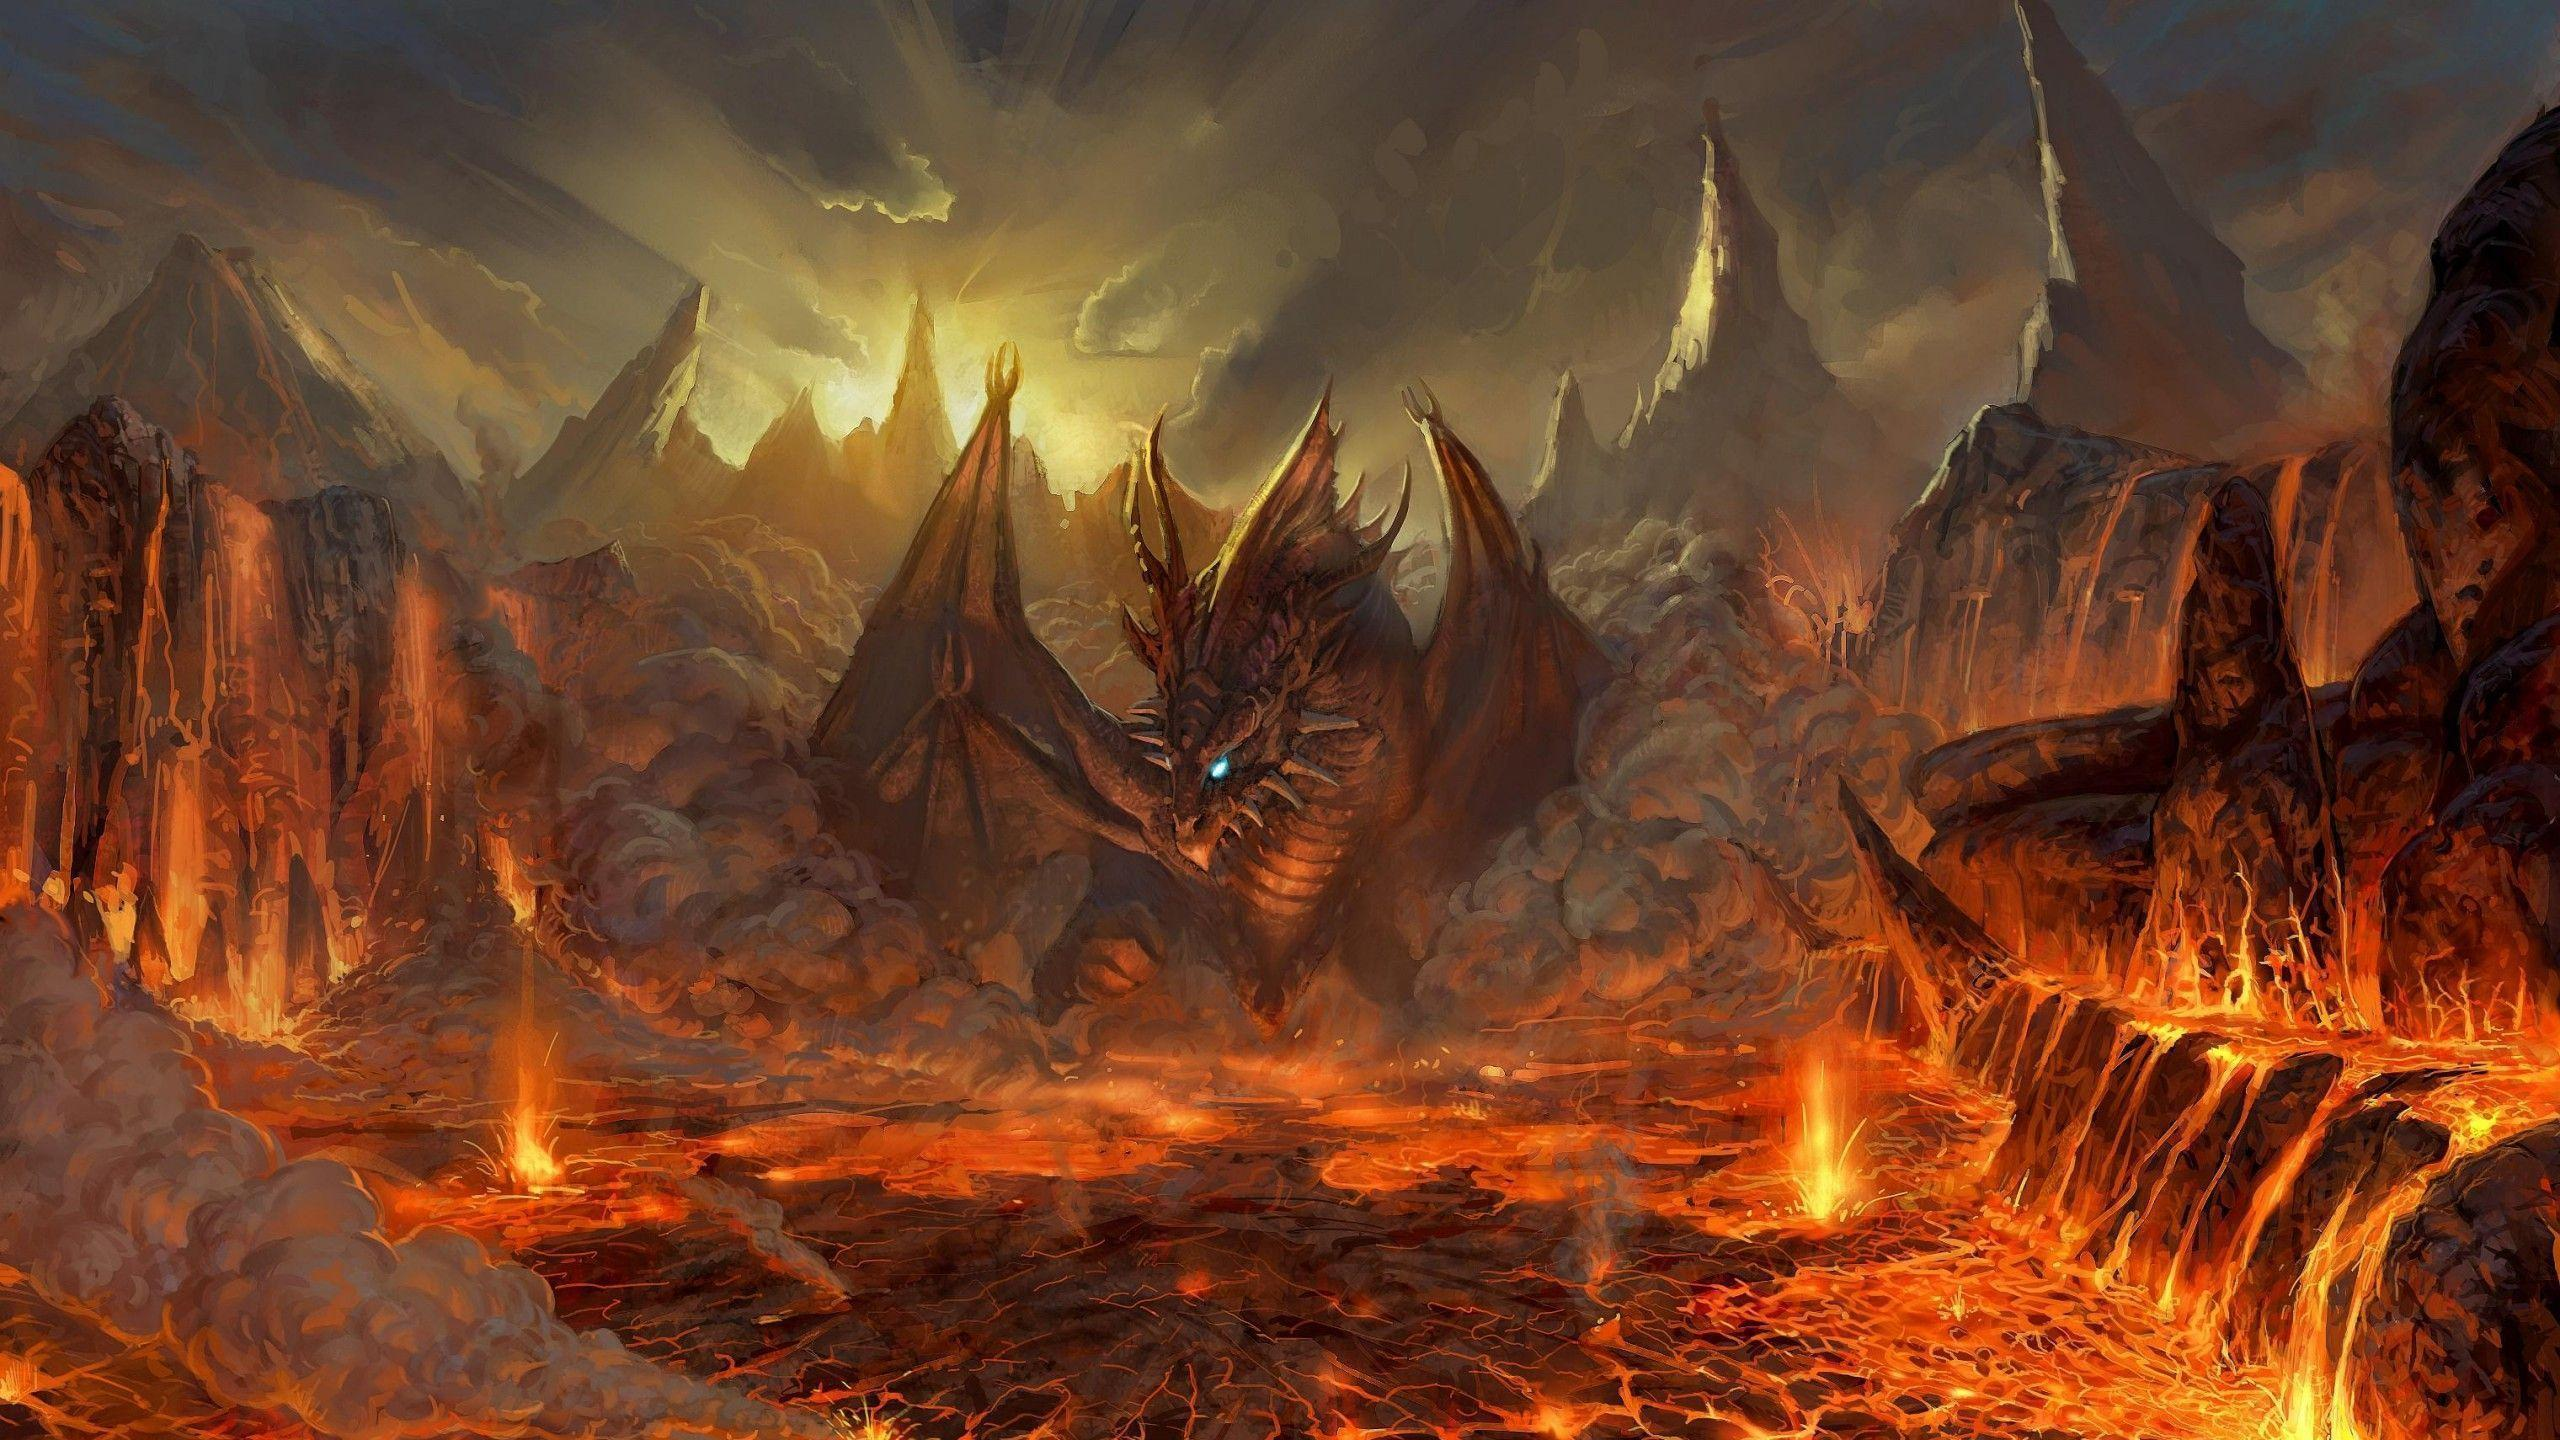 Fire dragon wallpapers wallpaper cave for Good home wallpaper